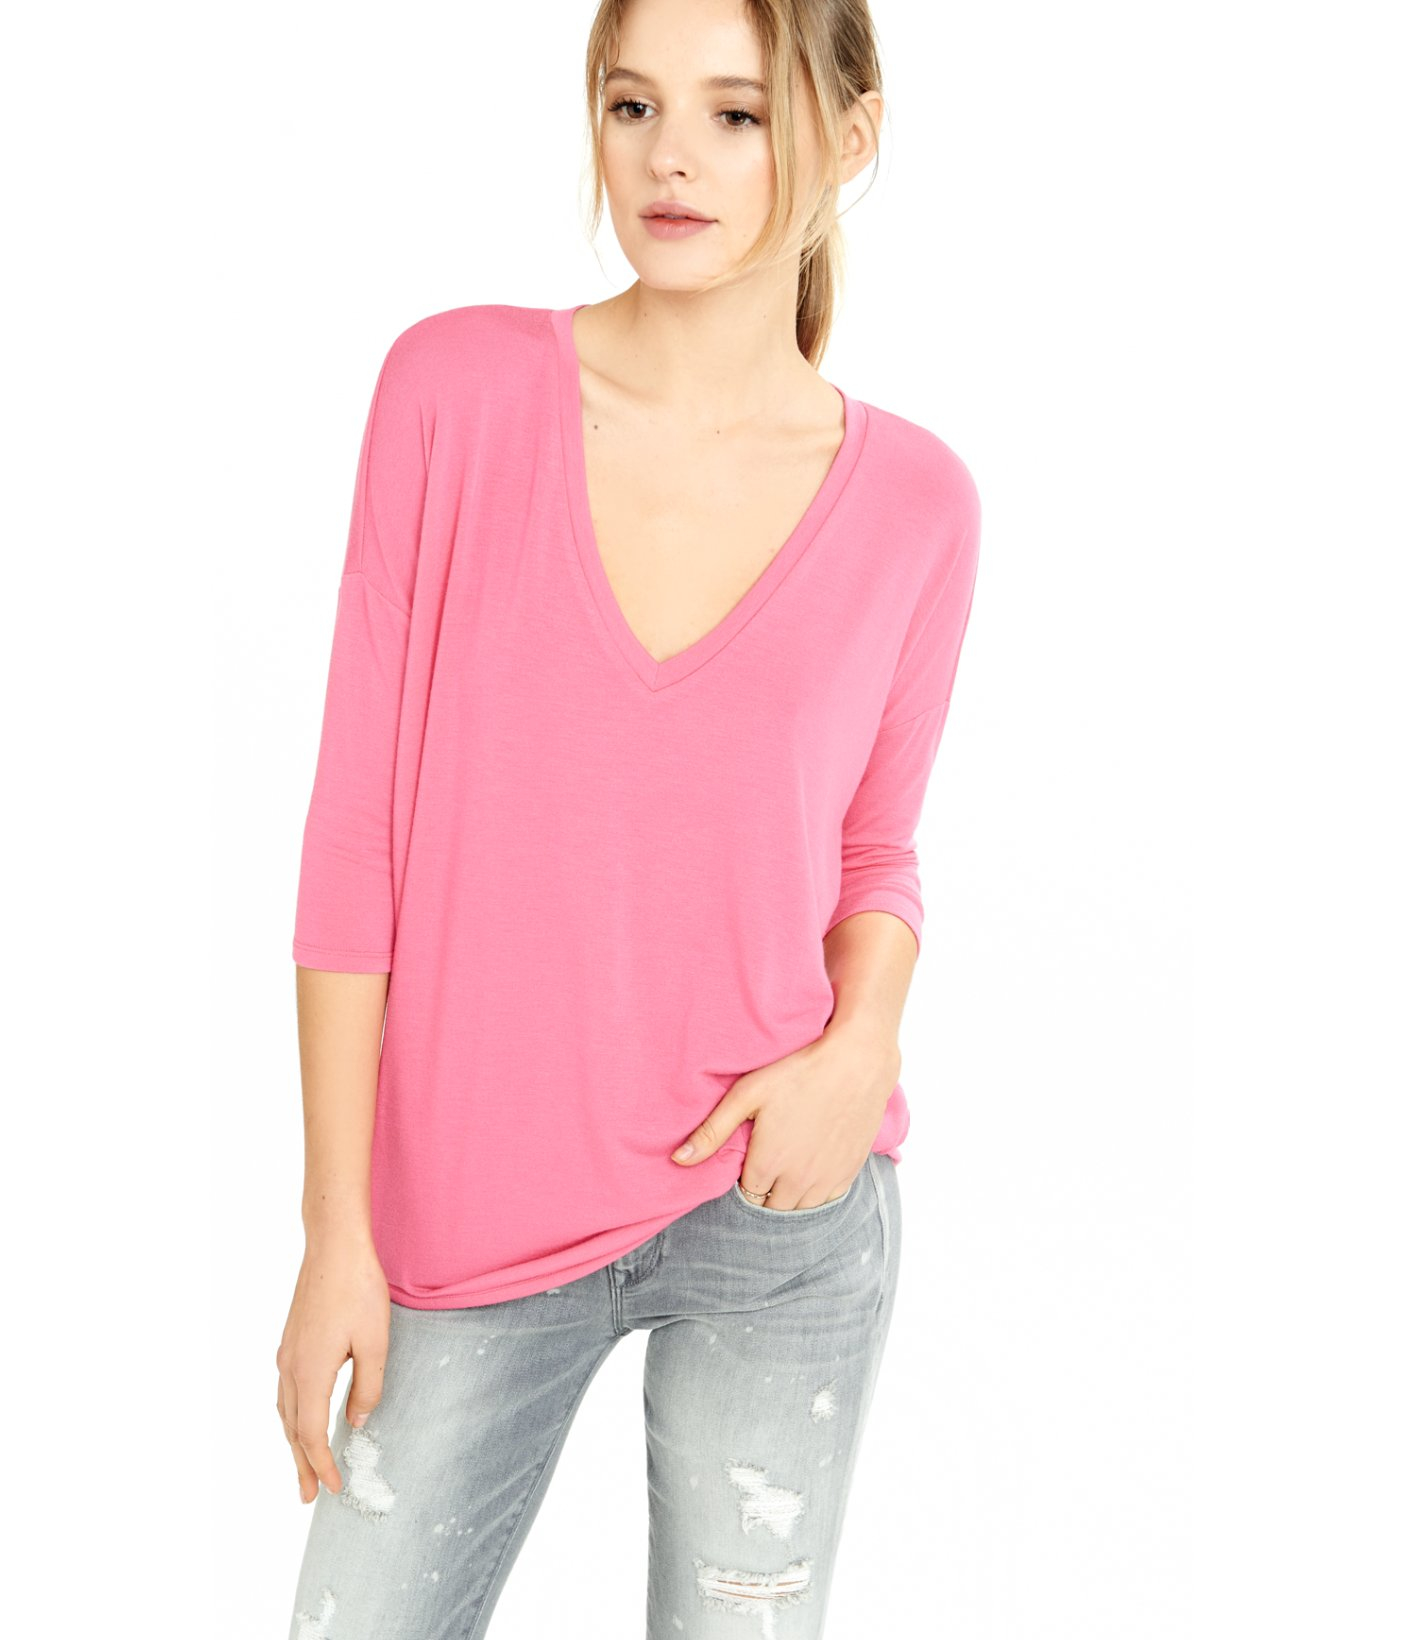 170b6f6a Lyst - Express One Eleven London Tee in Pink